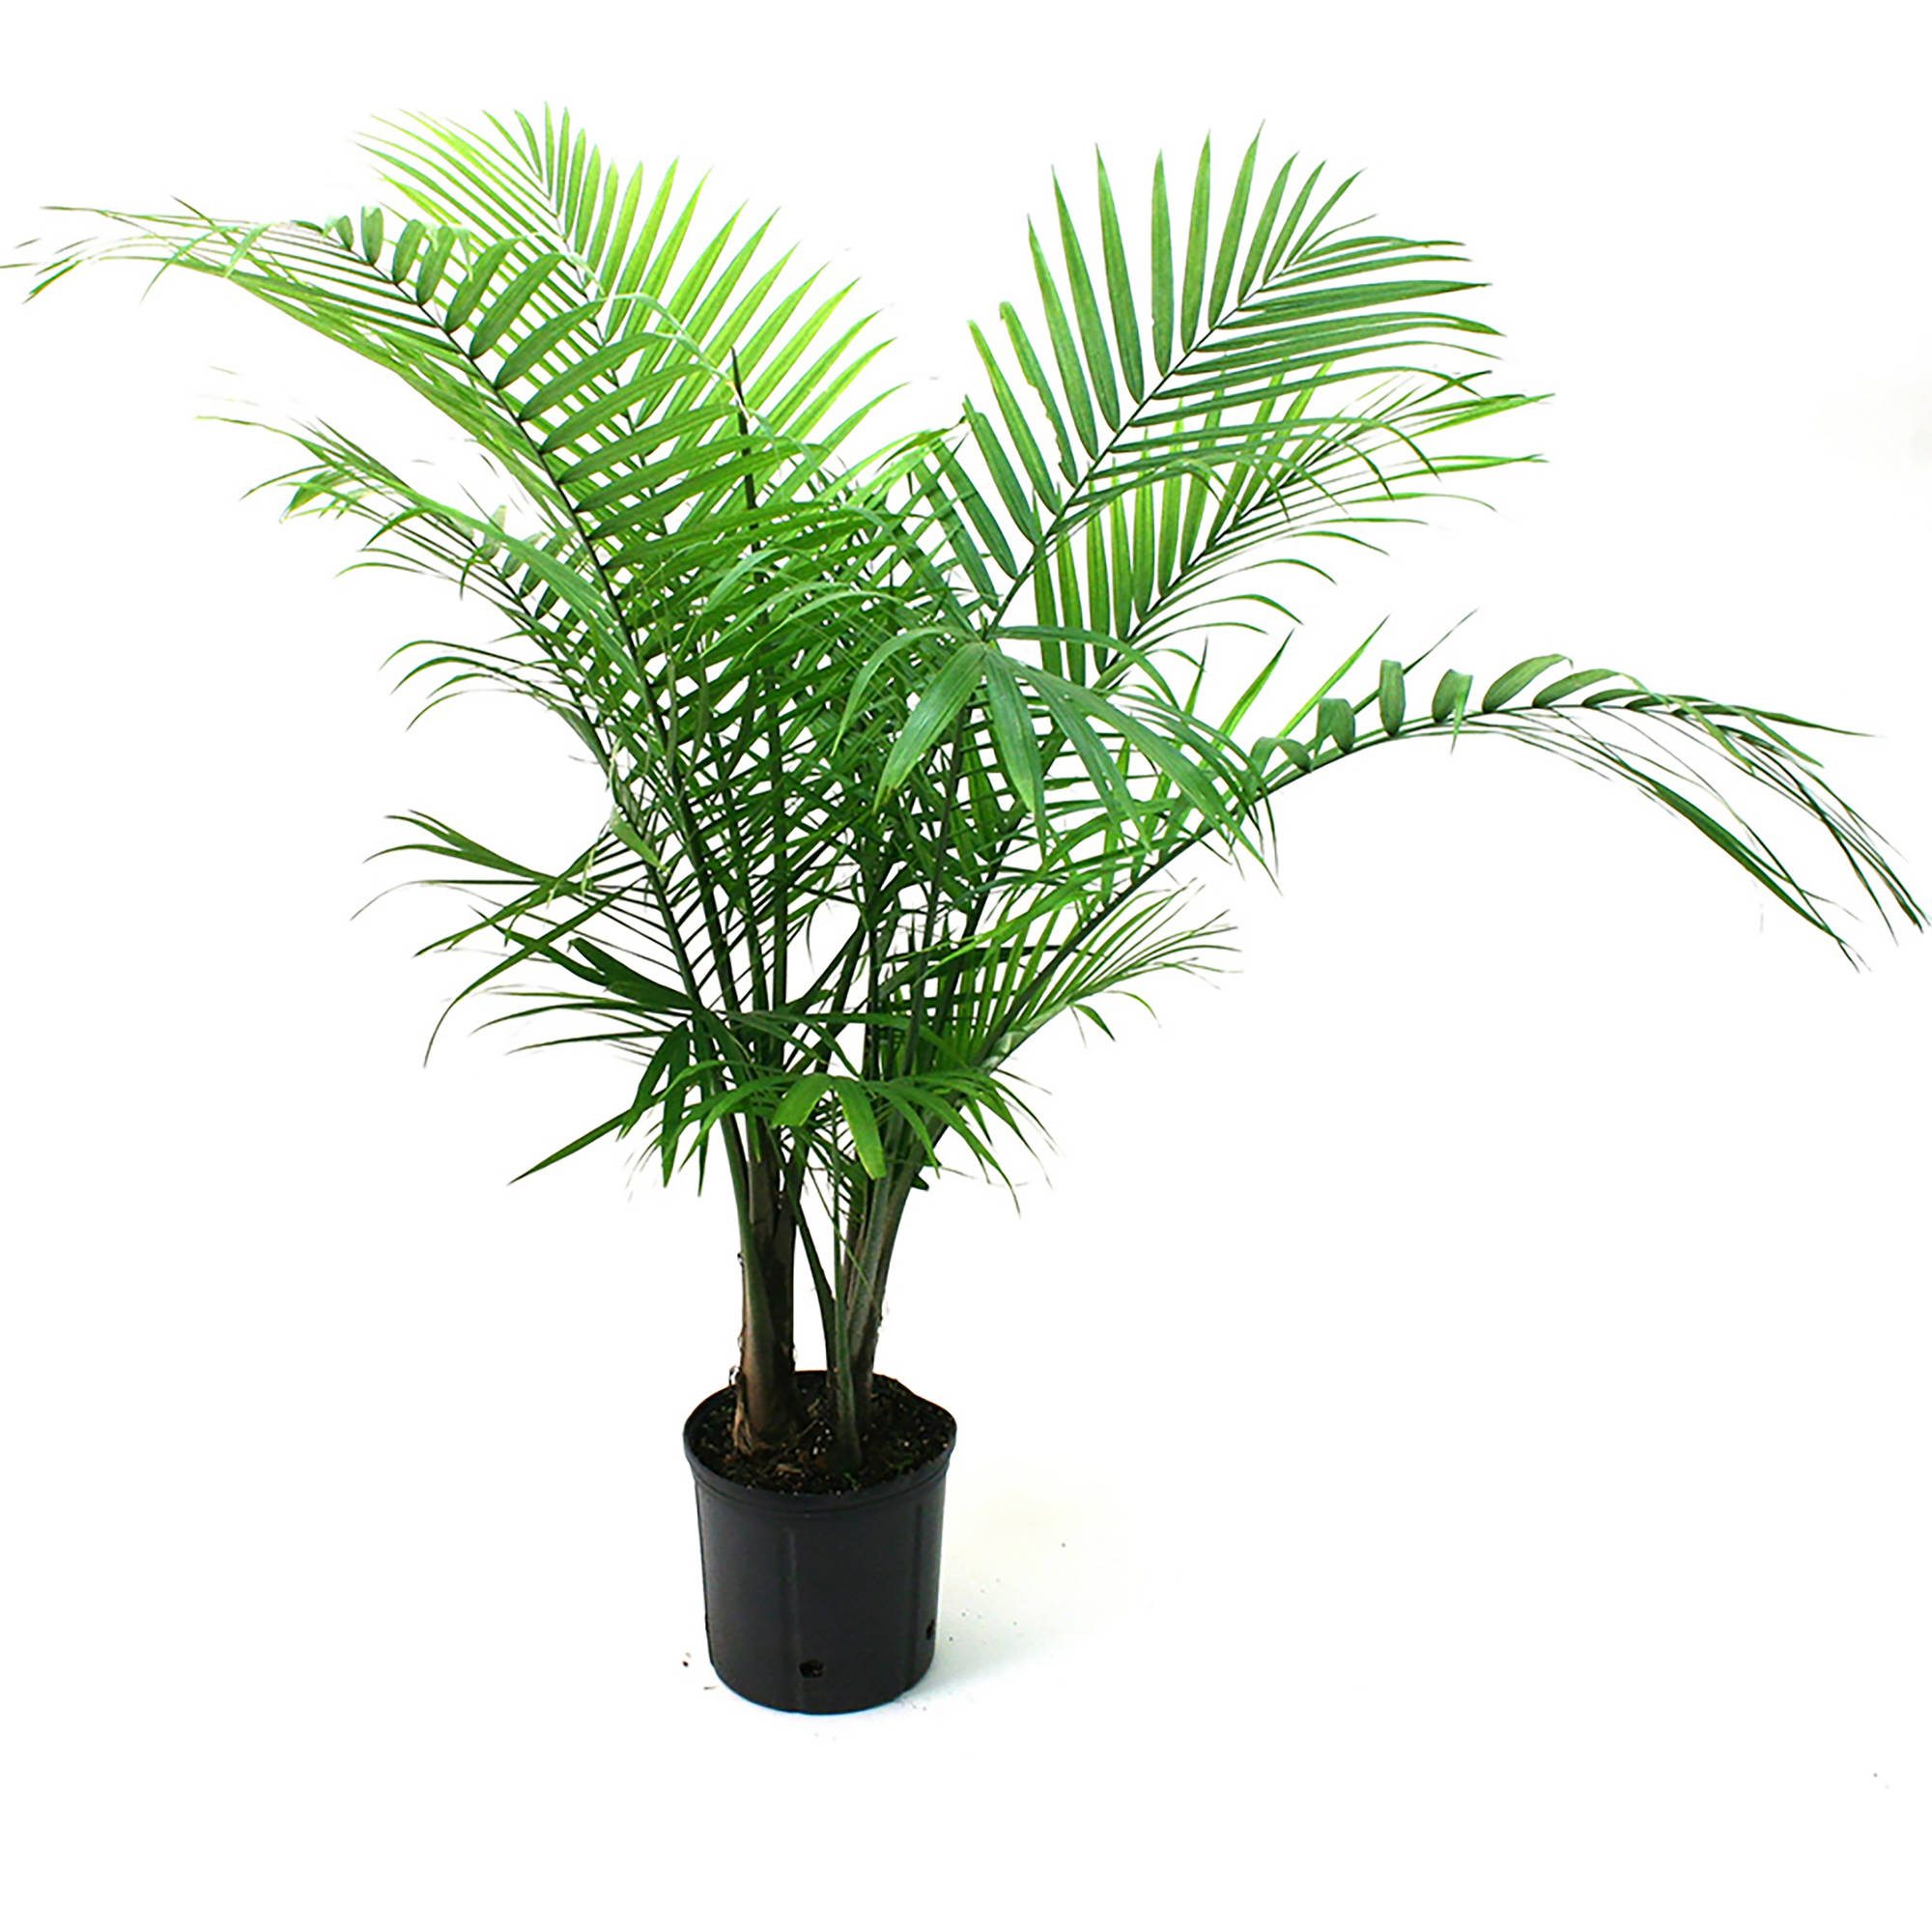 Majesty Palm Ravenea Rivularis Easy To Grow Live House